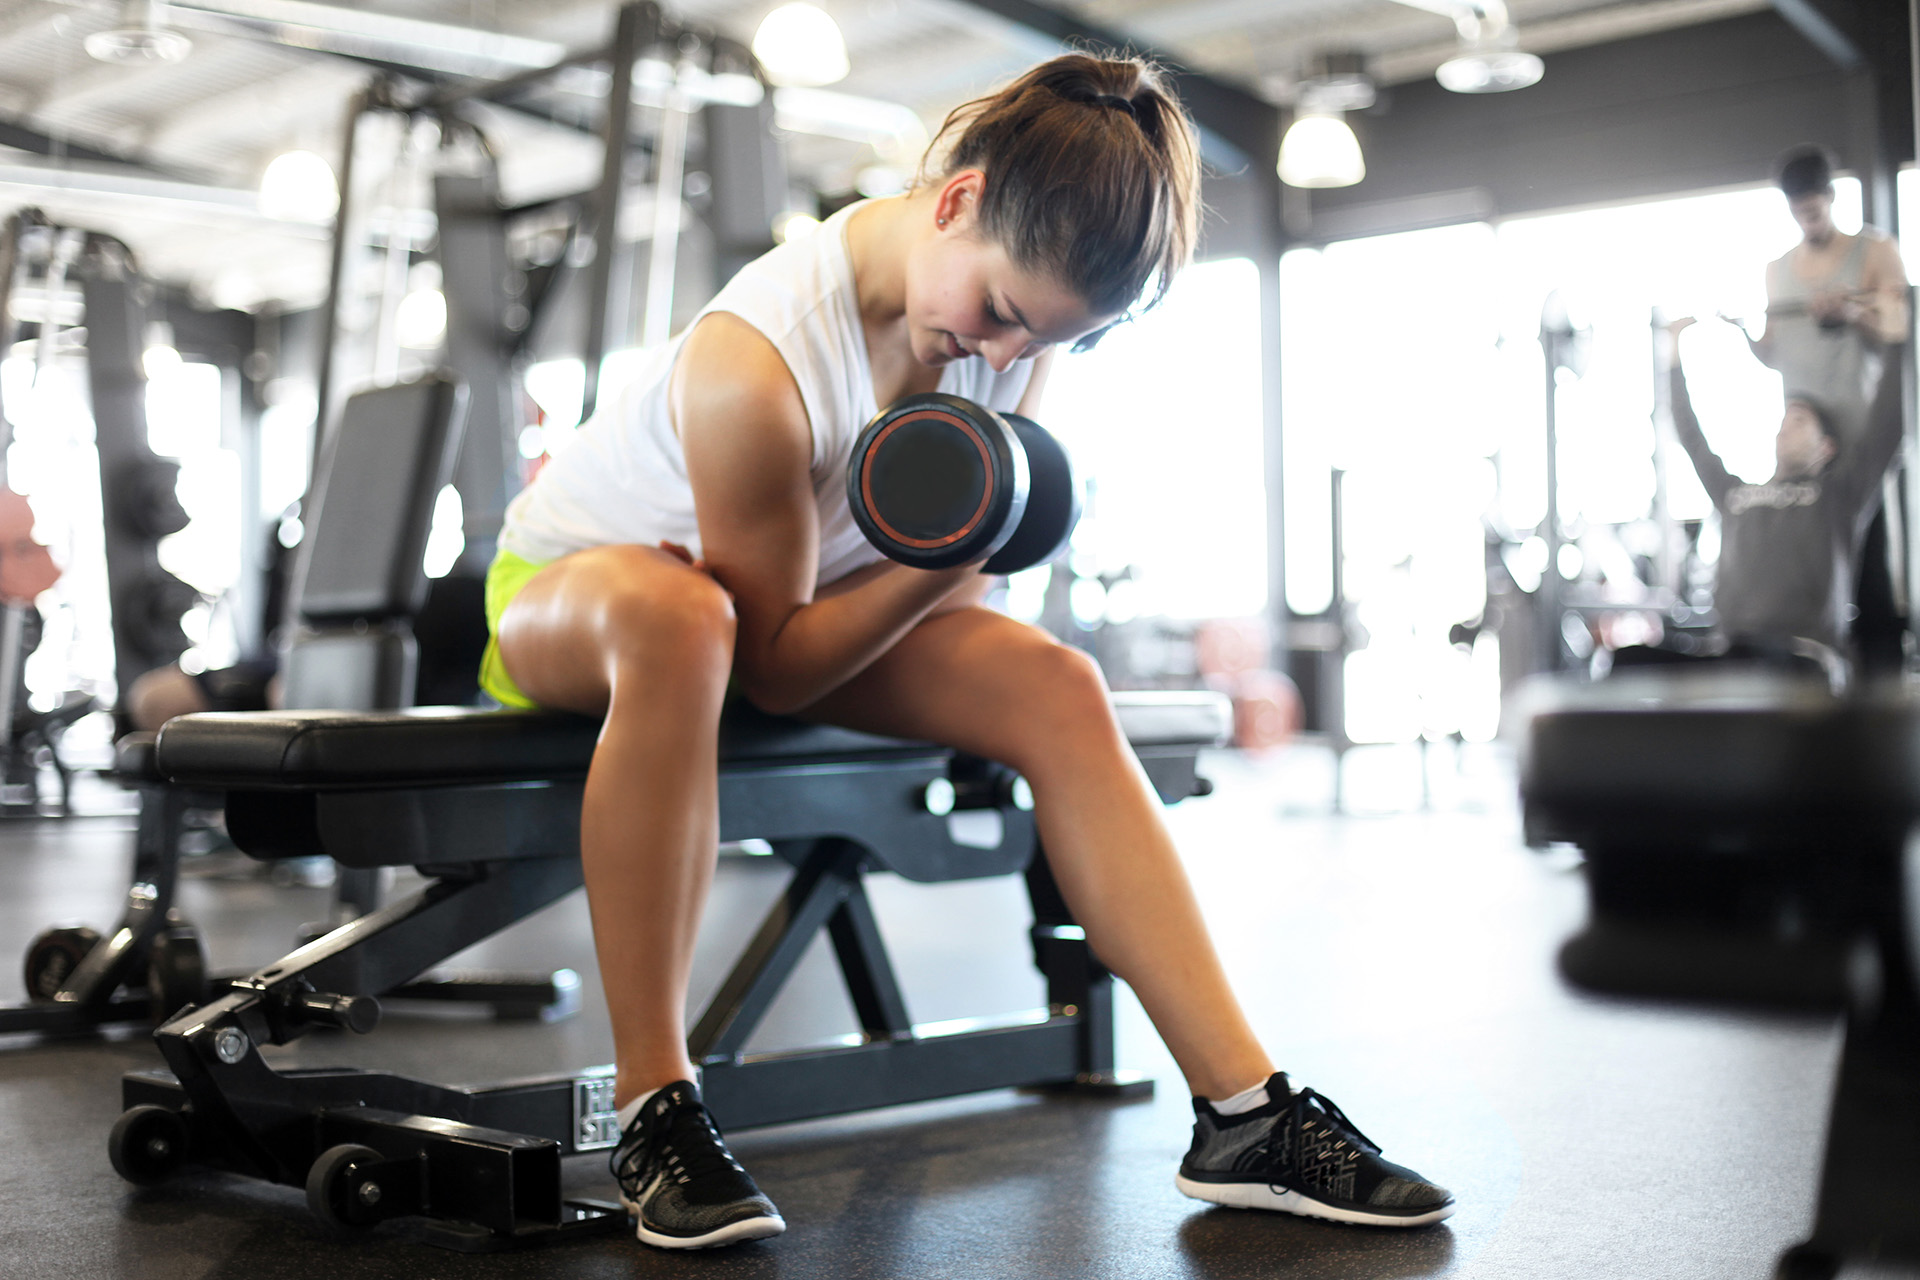 Hex Dumbbells: Types And Benefits